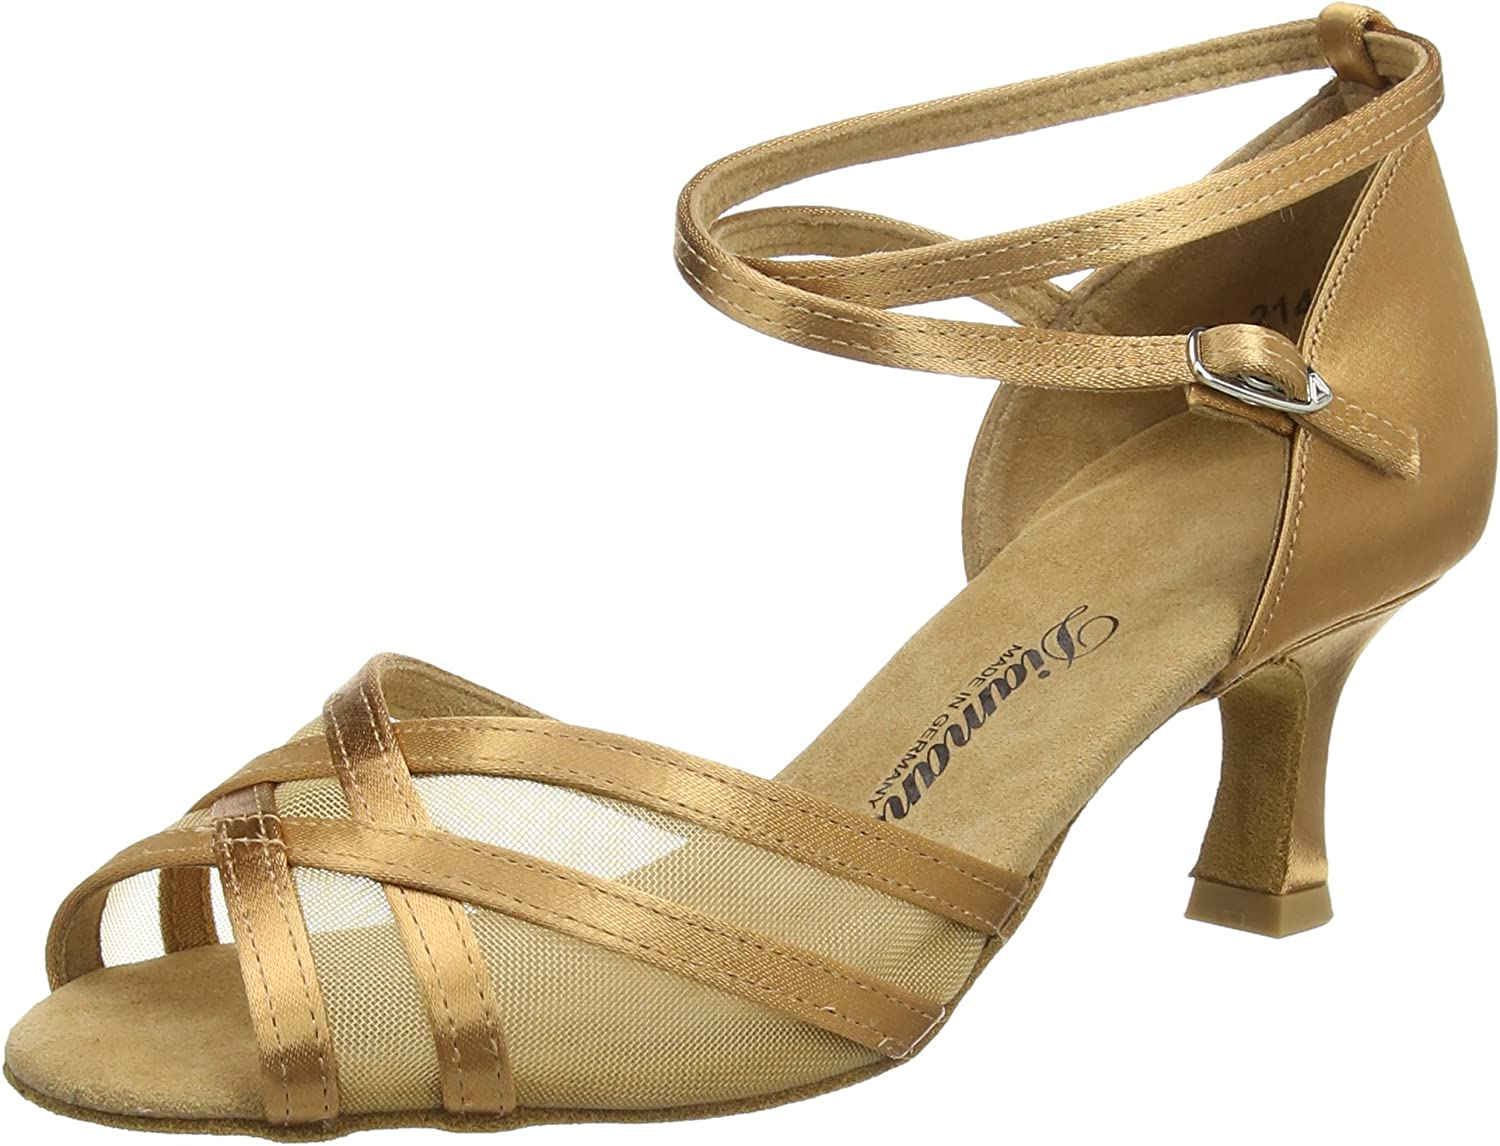 Diamant Latein 035-077-087 Damen Tanzschuhe - - Standard  Latein  Outlet Online-Shop